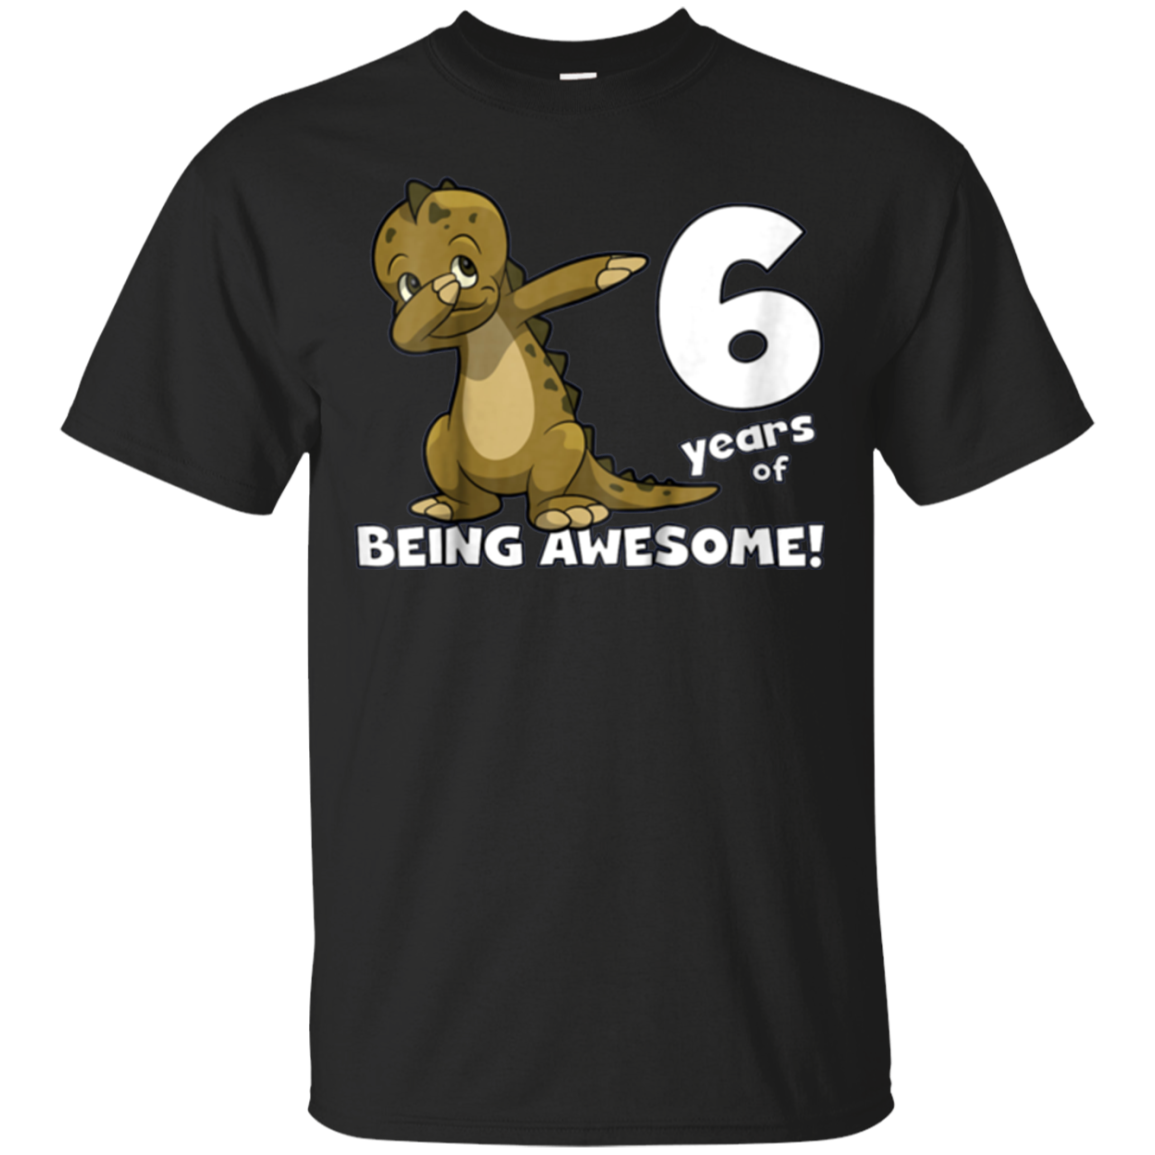 Kids Awesome 6 Year Old Birthday Shirt, Dabbing Dinosaur Shirt